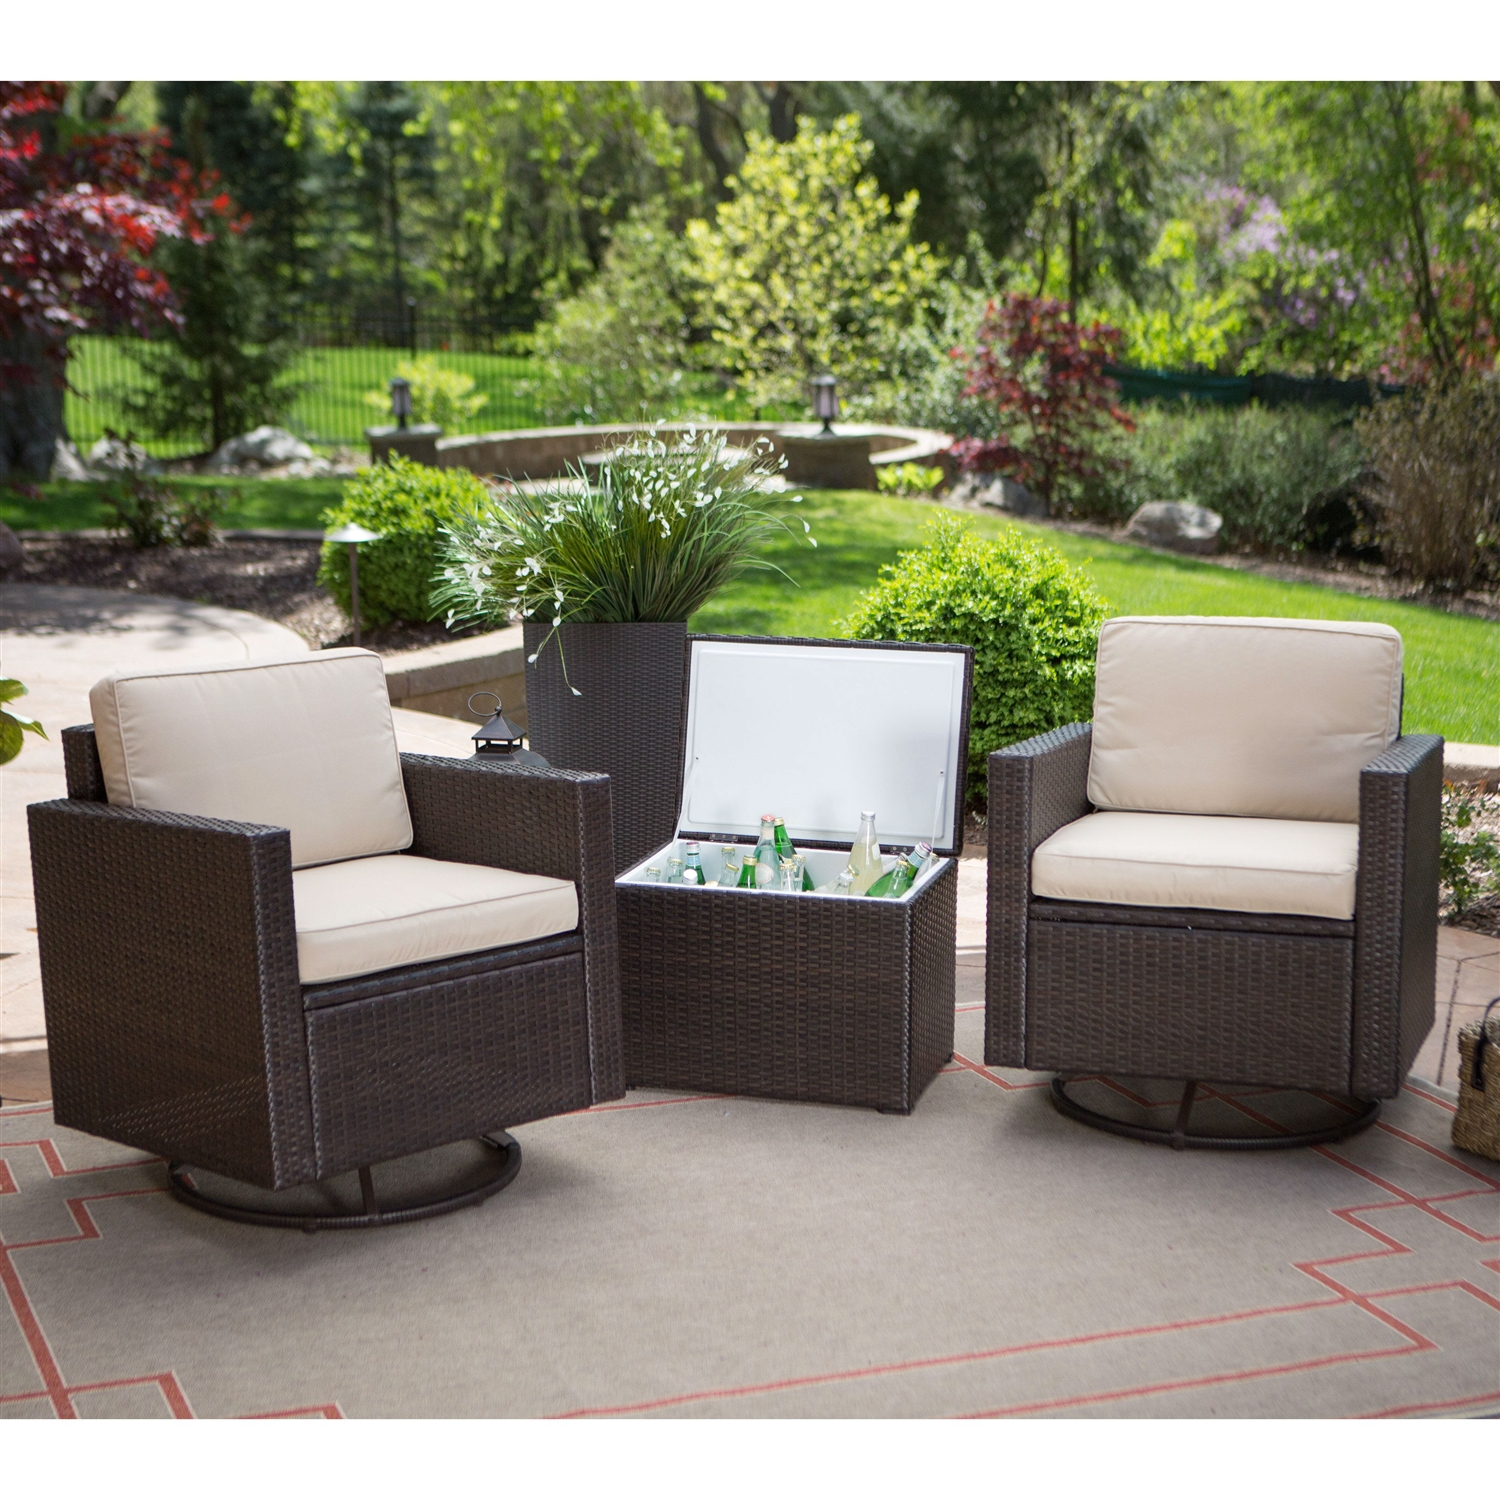 Outdoor Wicker Resin 3-Piece Patio Furniture Set with 2 Chairs and Cooler  Storage Side - Outdoor Wicker Resin 3-Piece Patio Furniture Set With 2 Chairs And